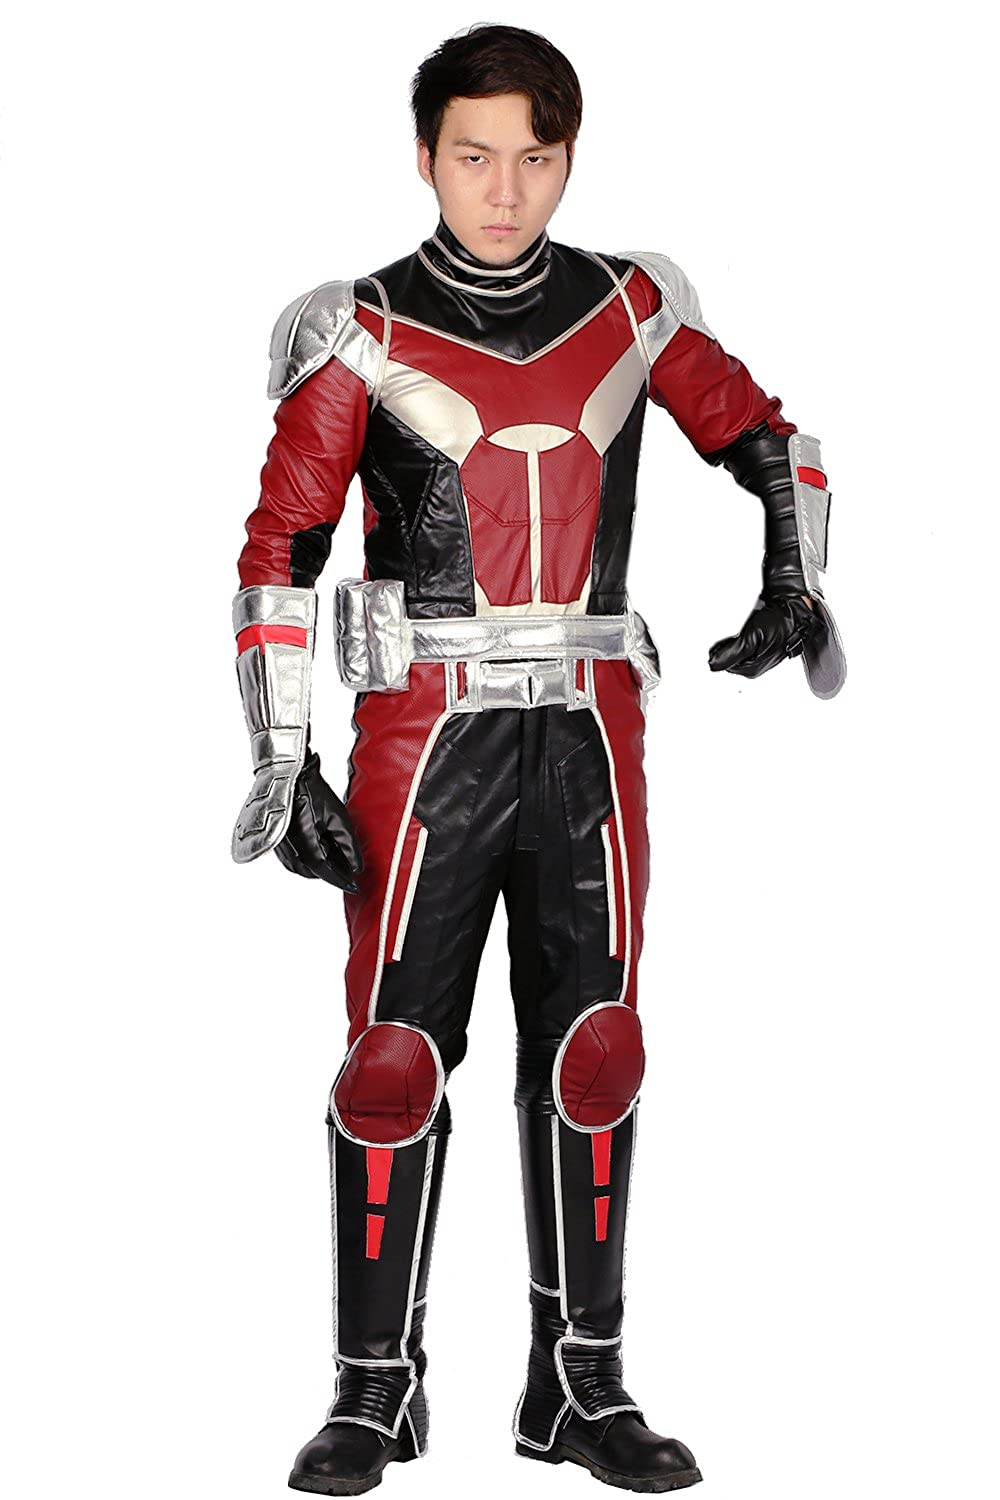 Updated Ant Man Costume and Helmet and Shoes Cover Outfit For Halloween Cosplay